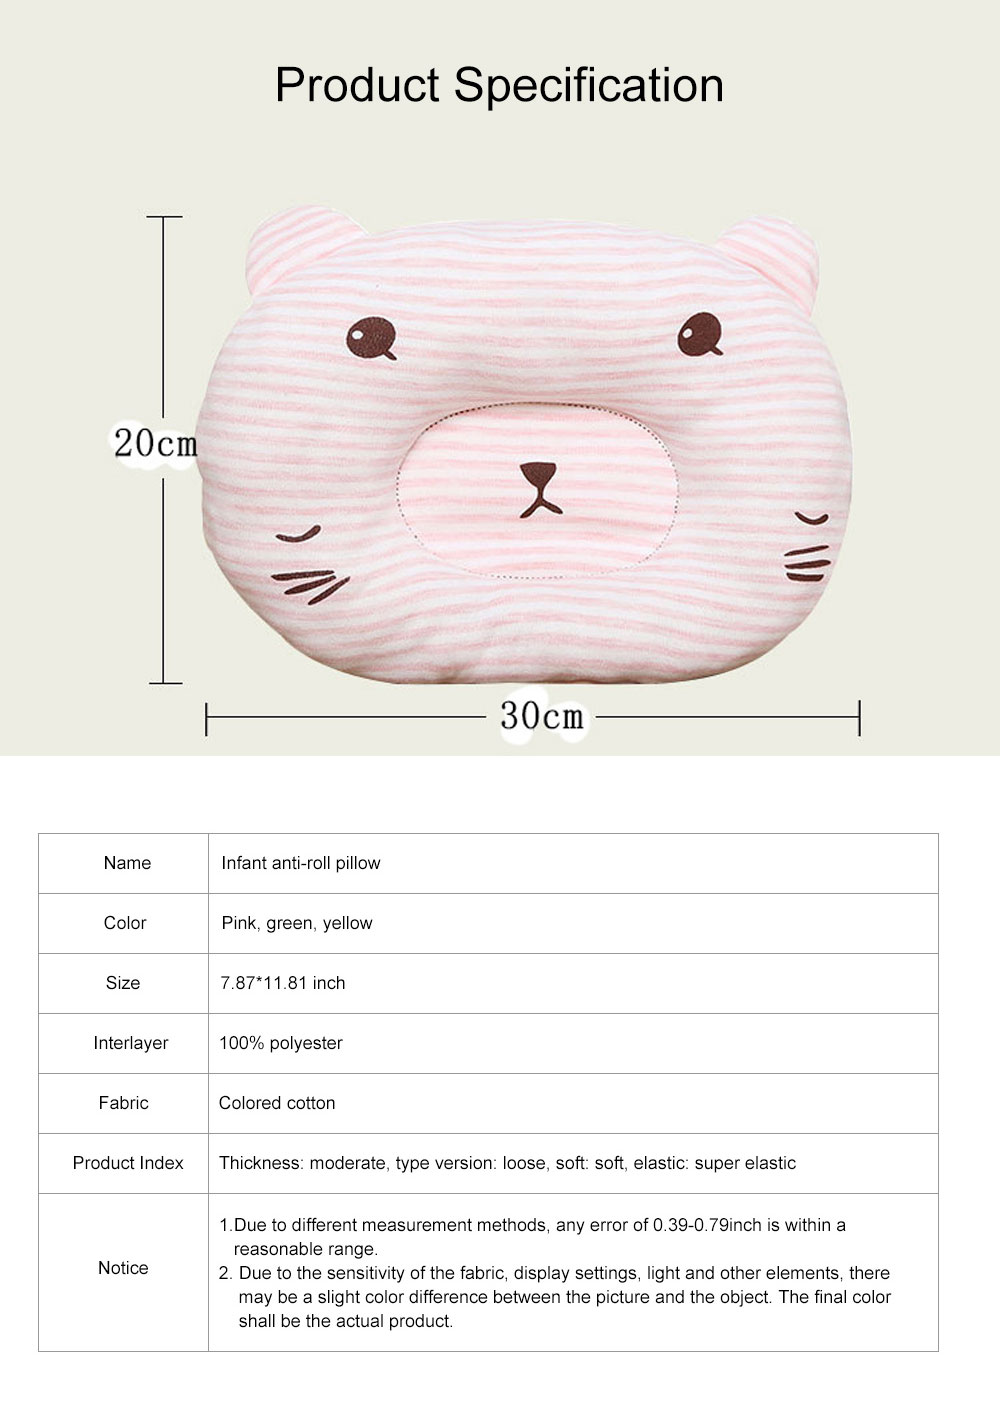 Cute Bear Model Anti-Roll Newborn Infant Pillow Skin-friendly Breathable Colored Cotton Prevent Flat Head Baby Sleep Cushion 7